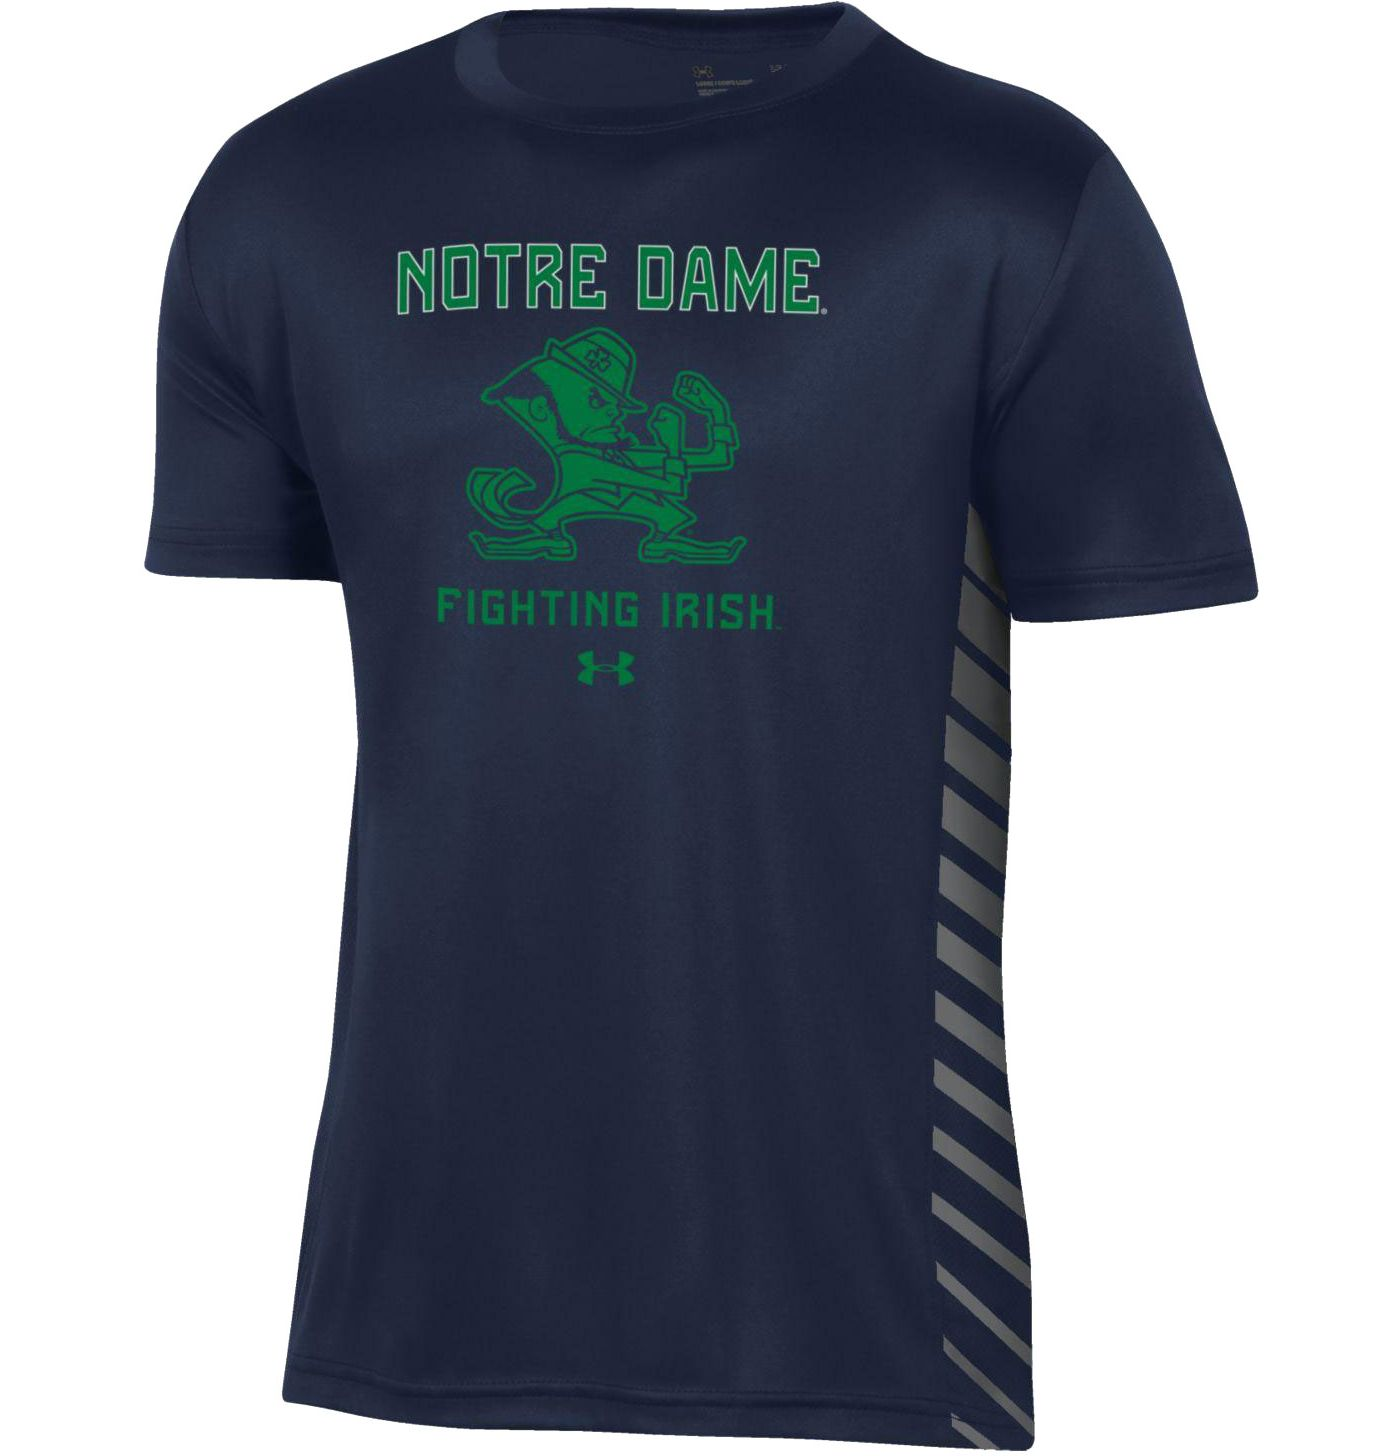 Under Armour Youth Notre Dame Fighting Irish Navy Performance Novelty T-Shirt